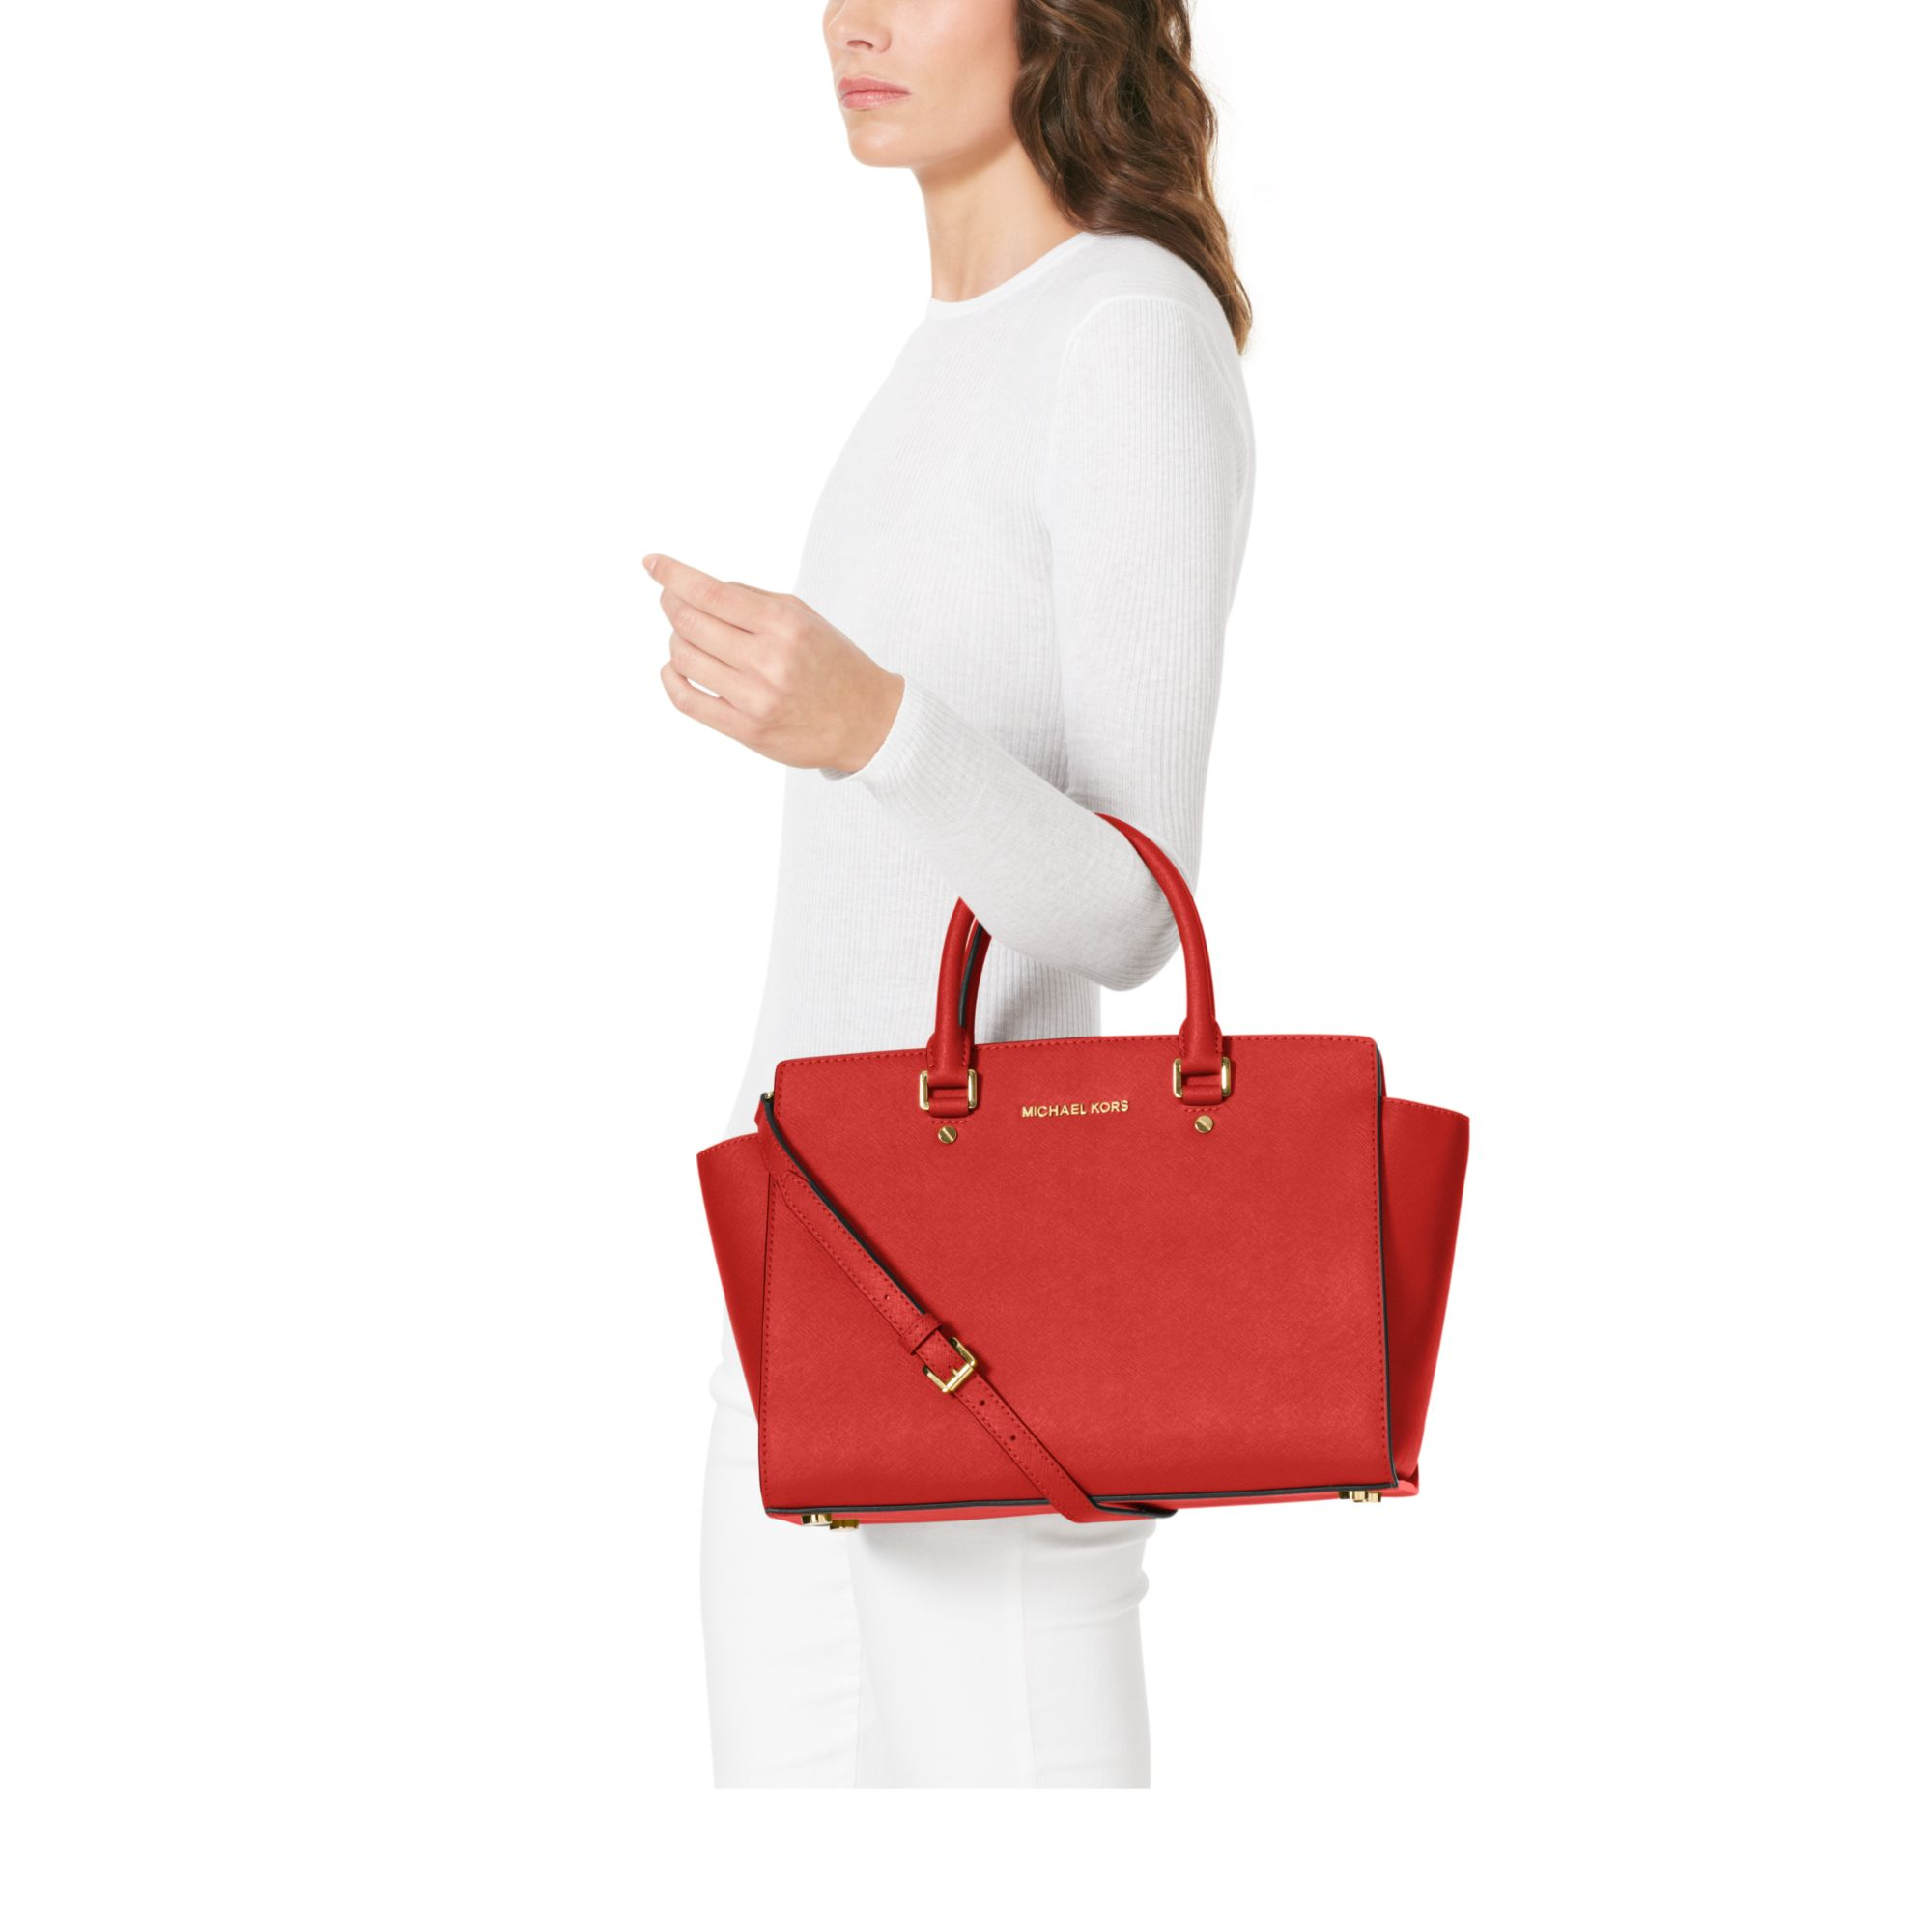 7f16ac1c1f25 Lyst - Michael Kors Selma Large Saffiano Leather Satchel in Red